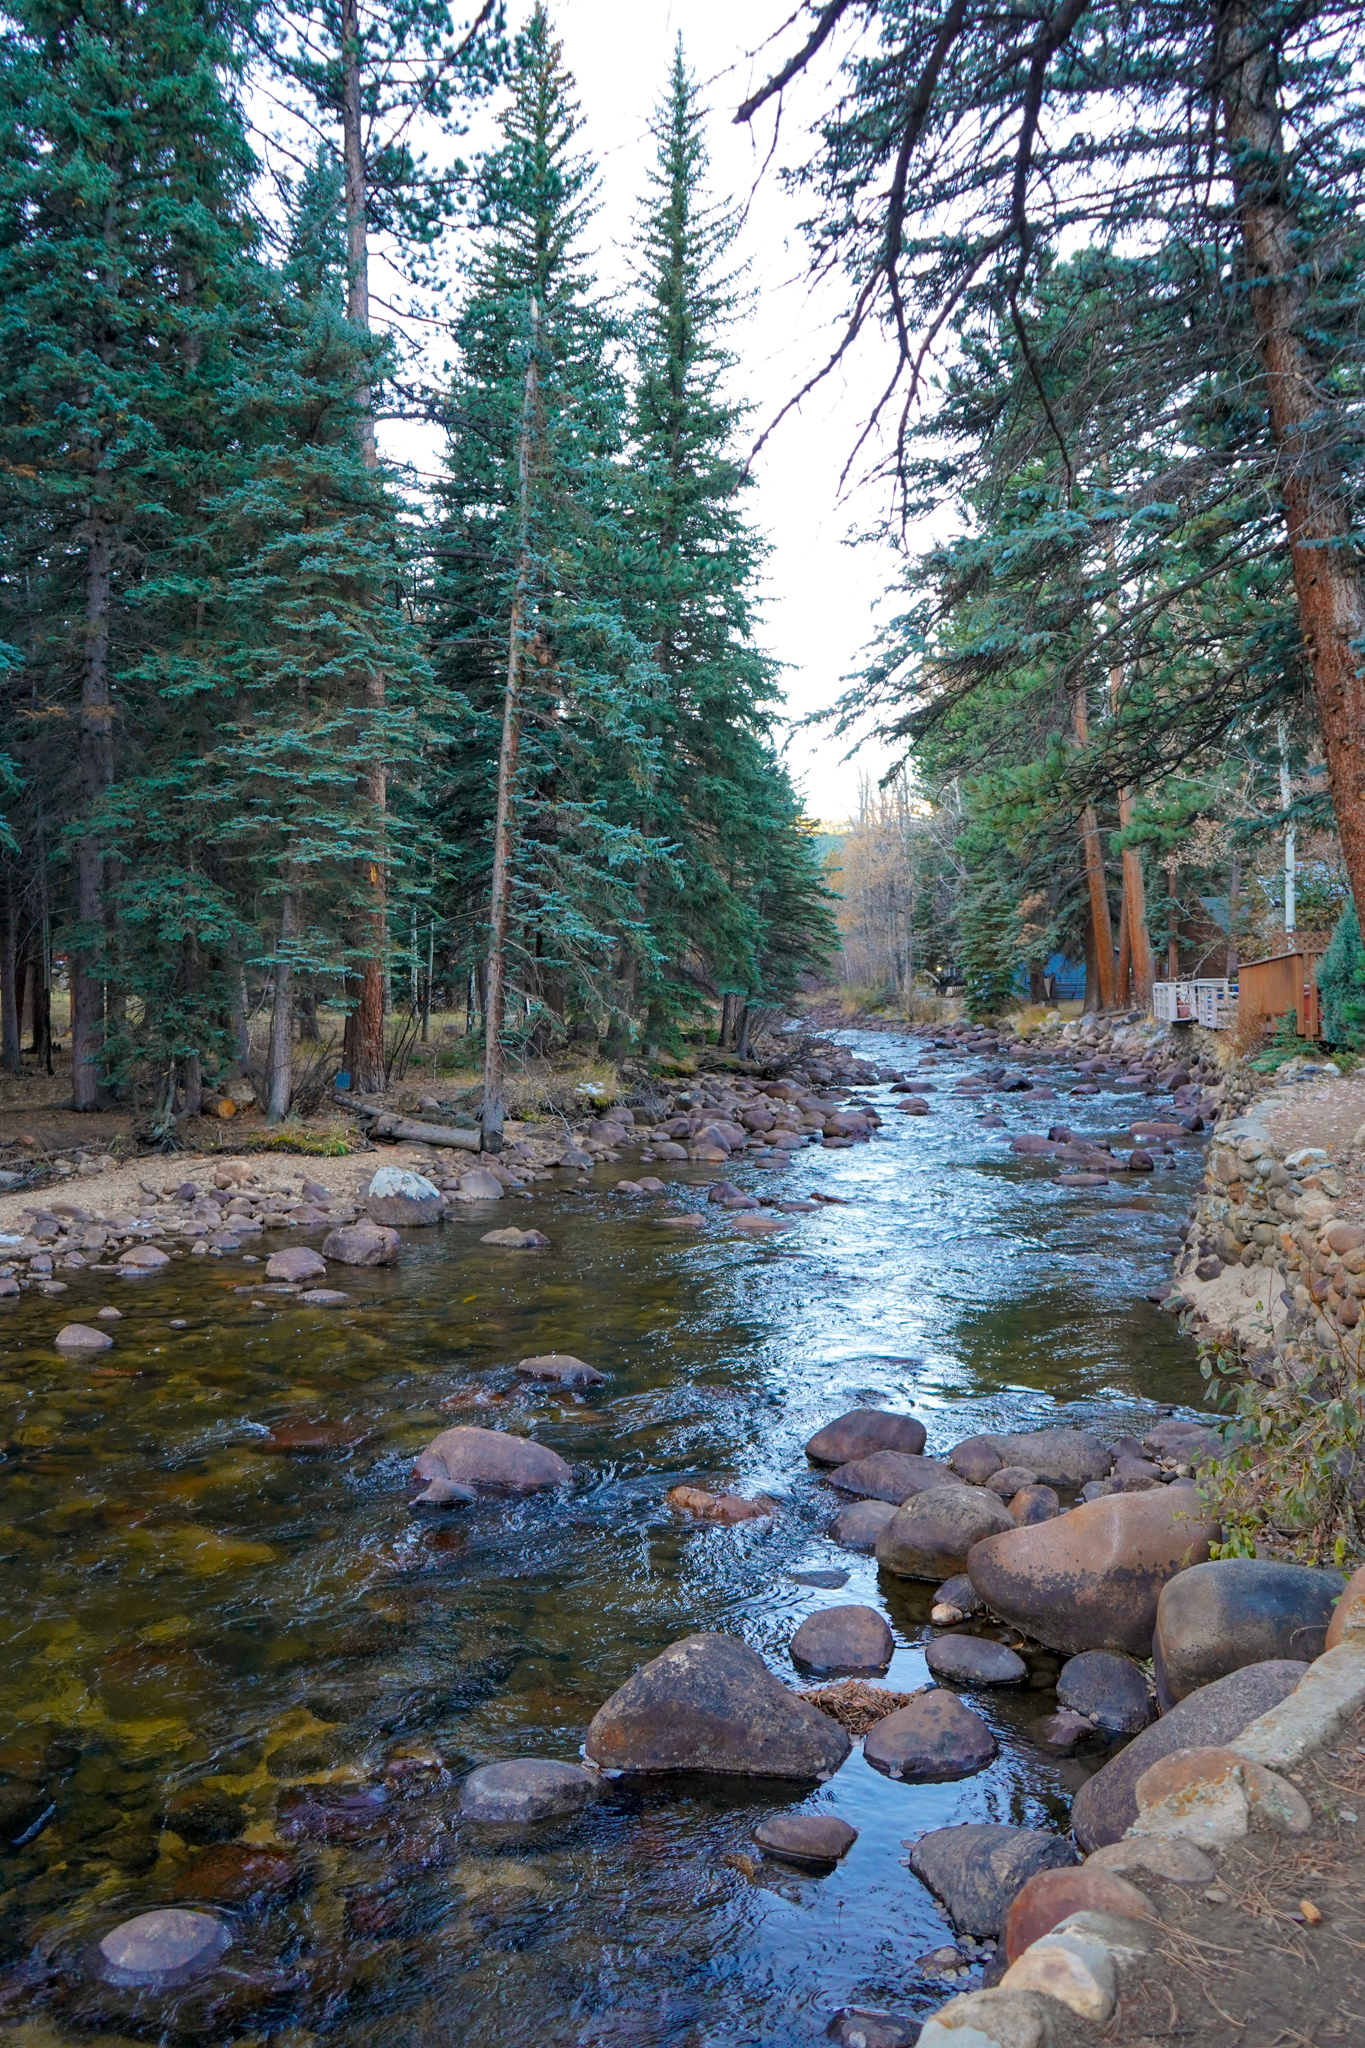 Uprooted-Traveler-rocky-mountain-national-park-cabin-river-spruce.jpg